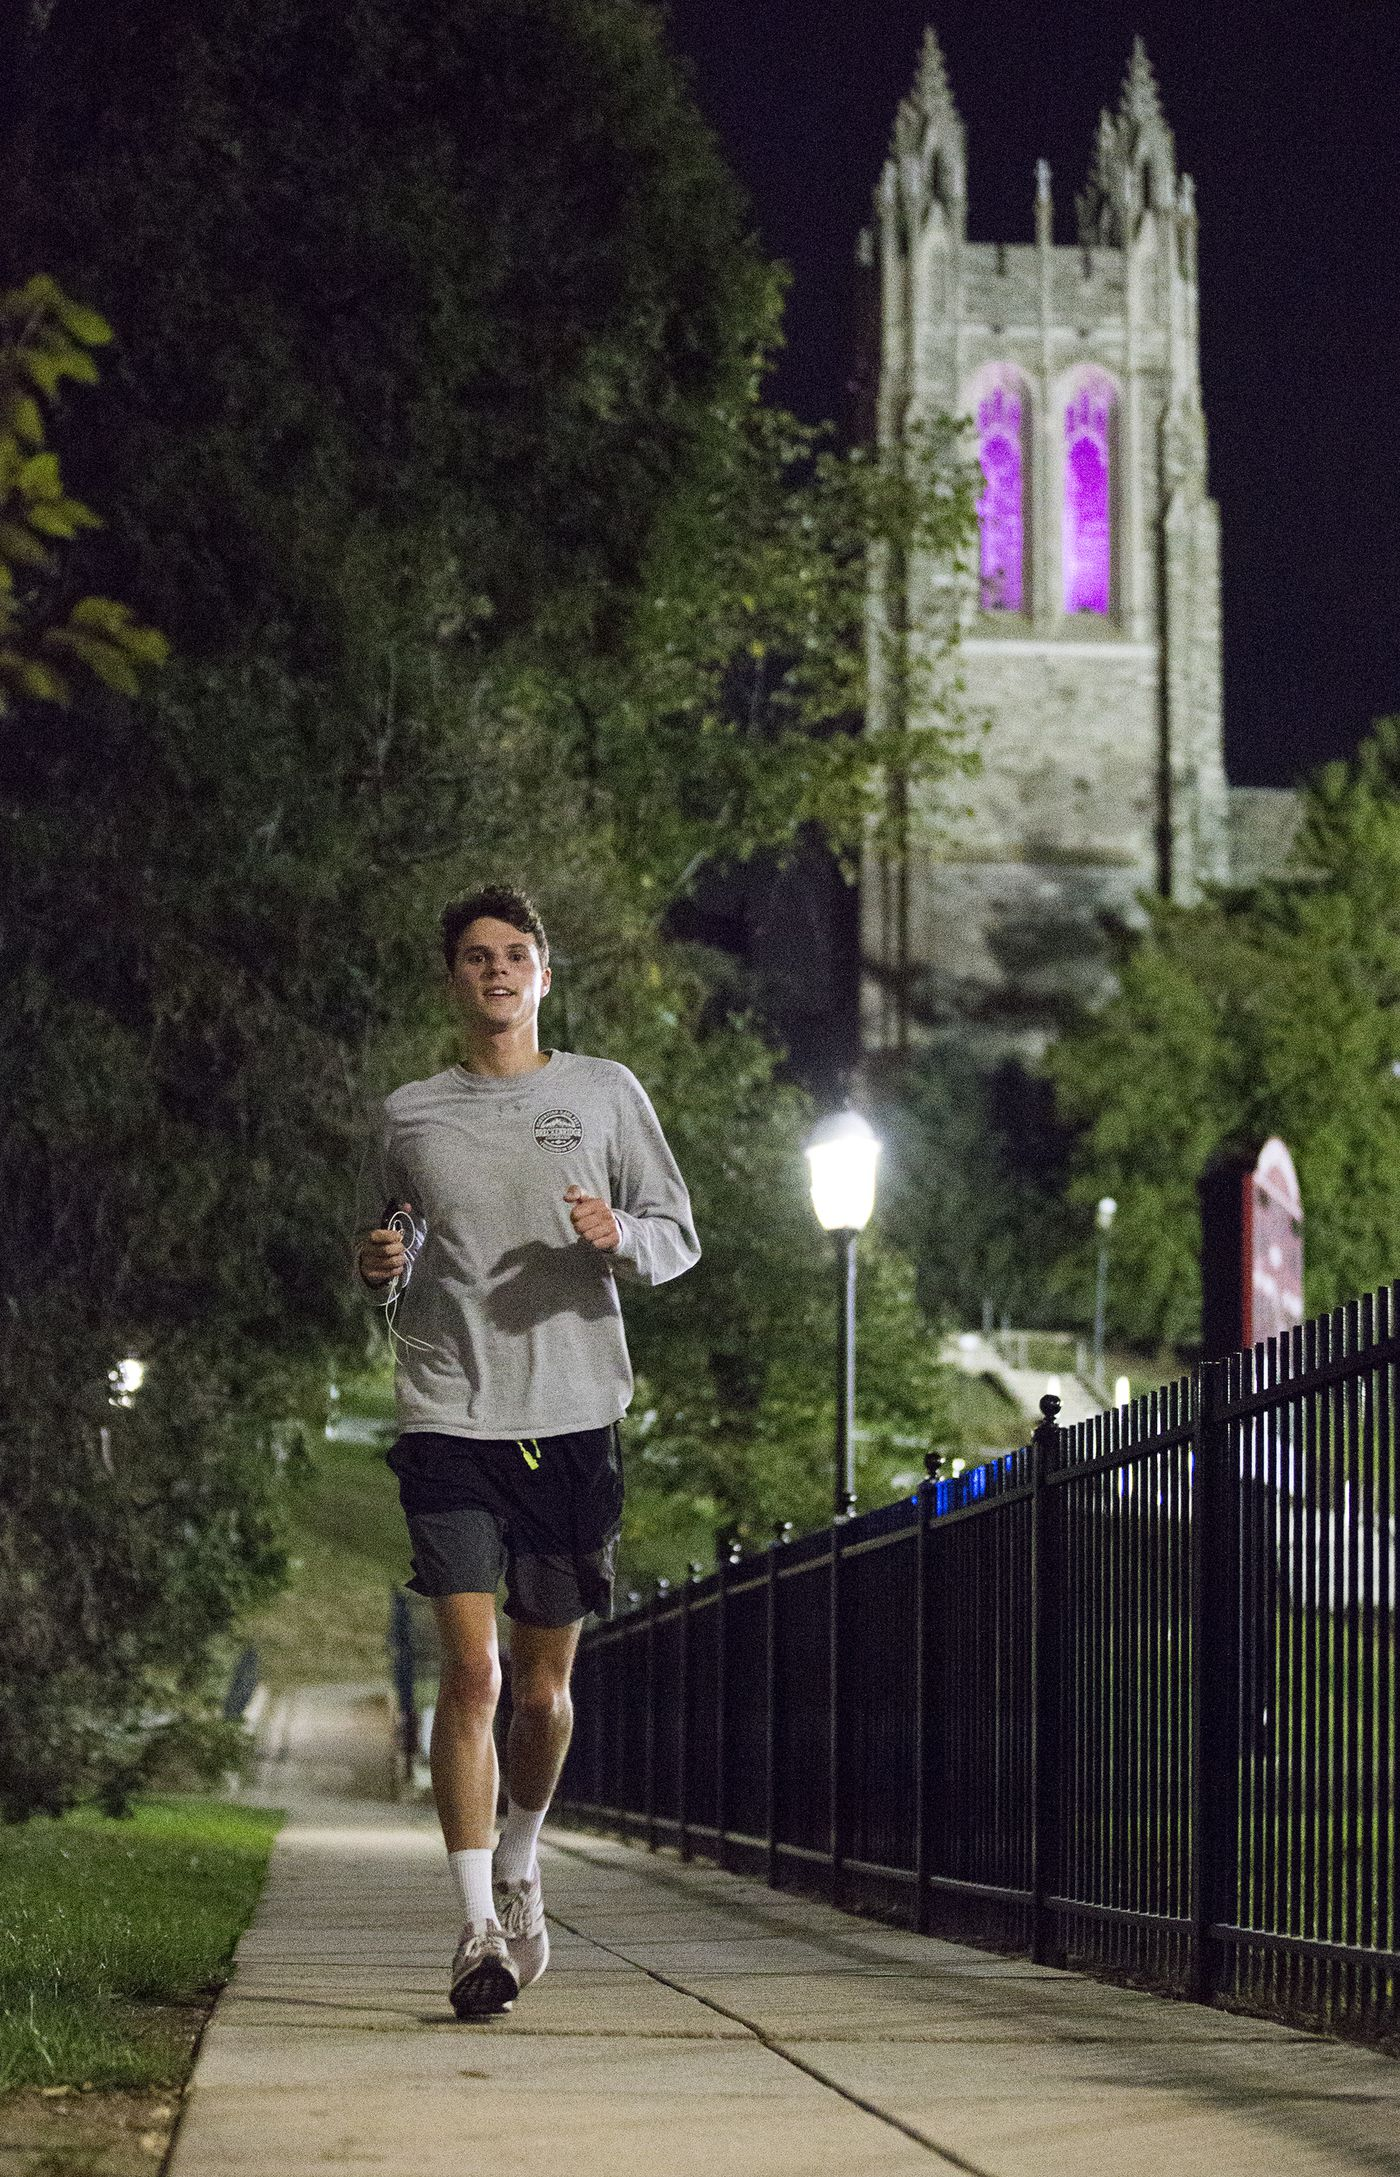 Ethan Widrig, a St. Joseph's student, is running a 5K every single day for 100 days to raise money for Alzheimer's awareness and research. He usually runs at night. He is shown on Oct. 11, 2019.